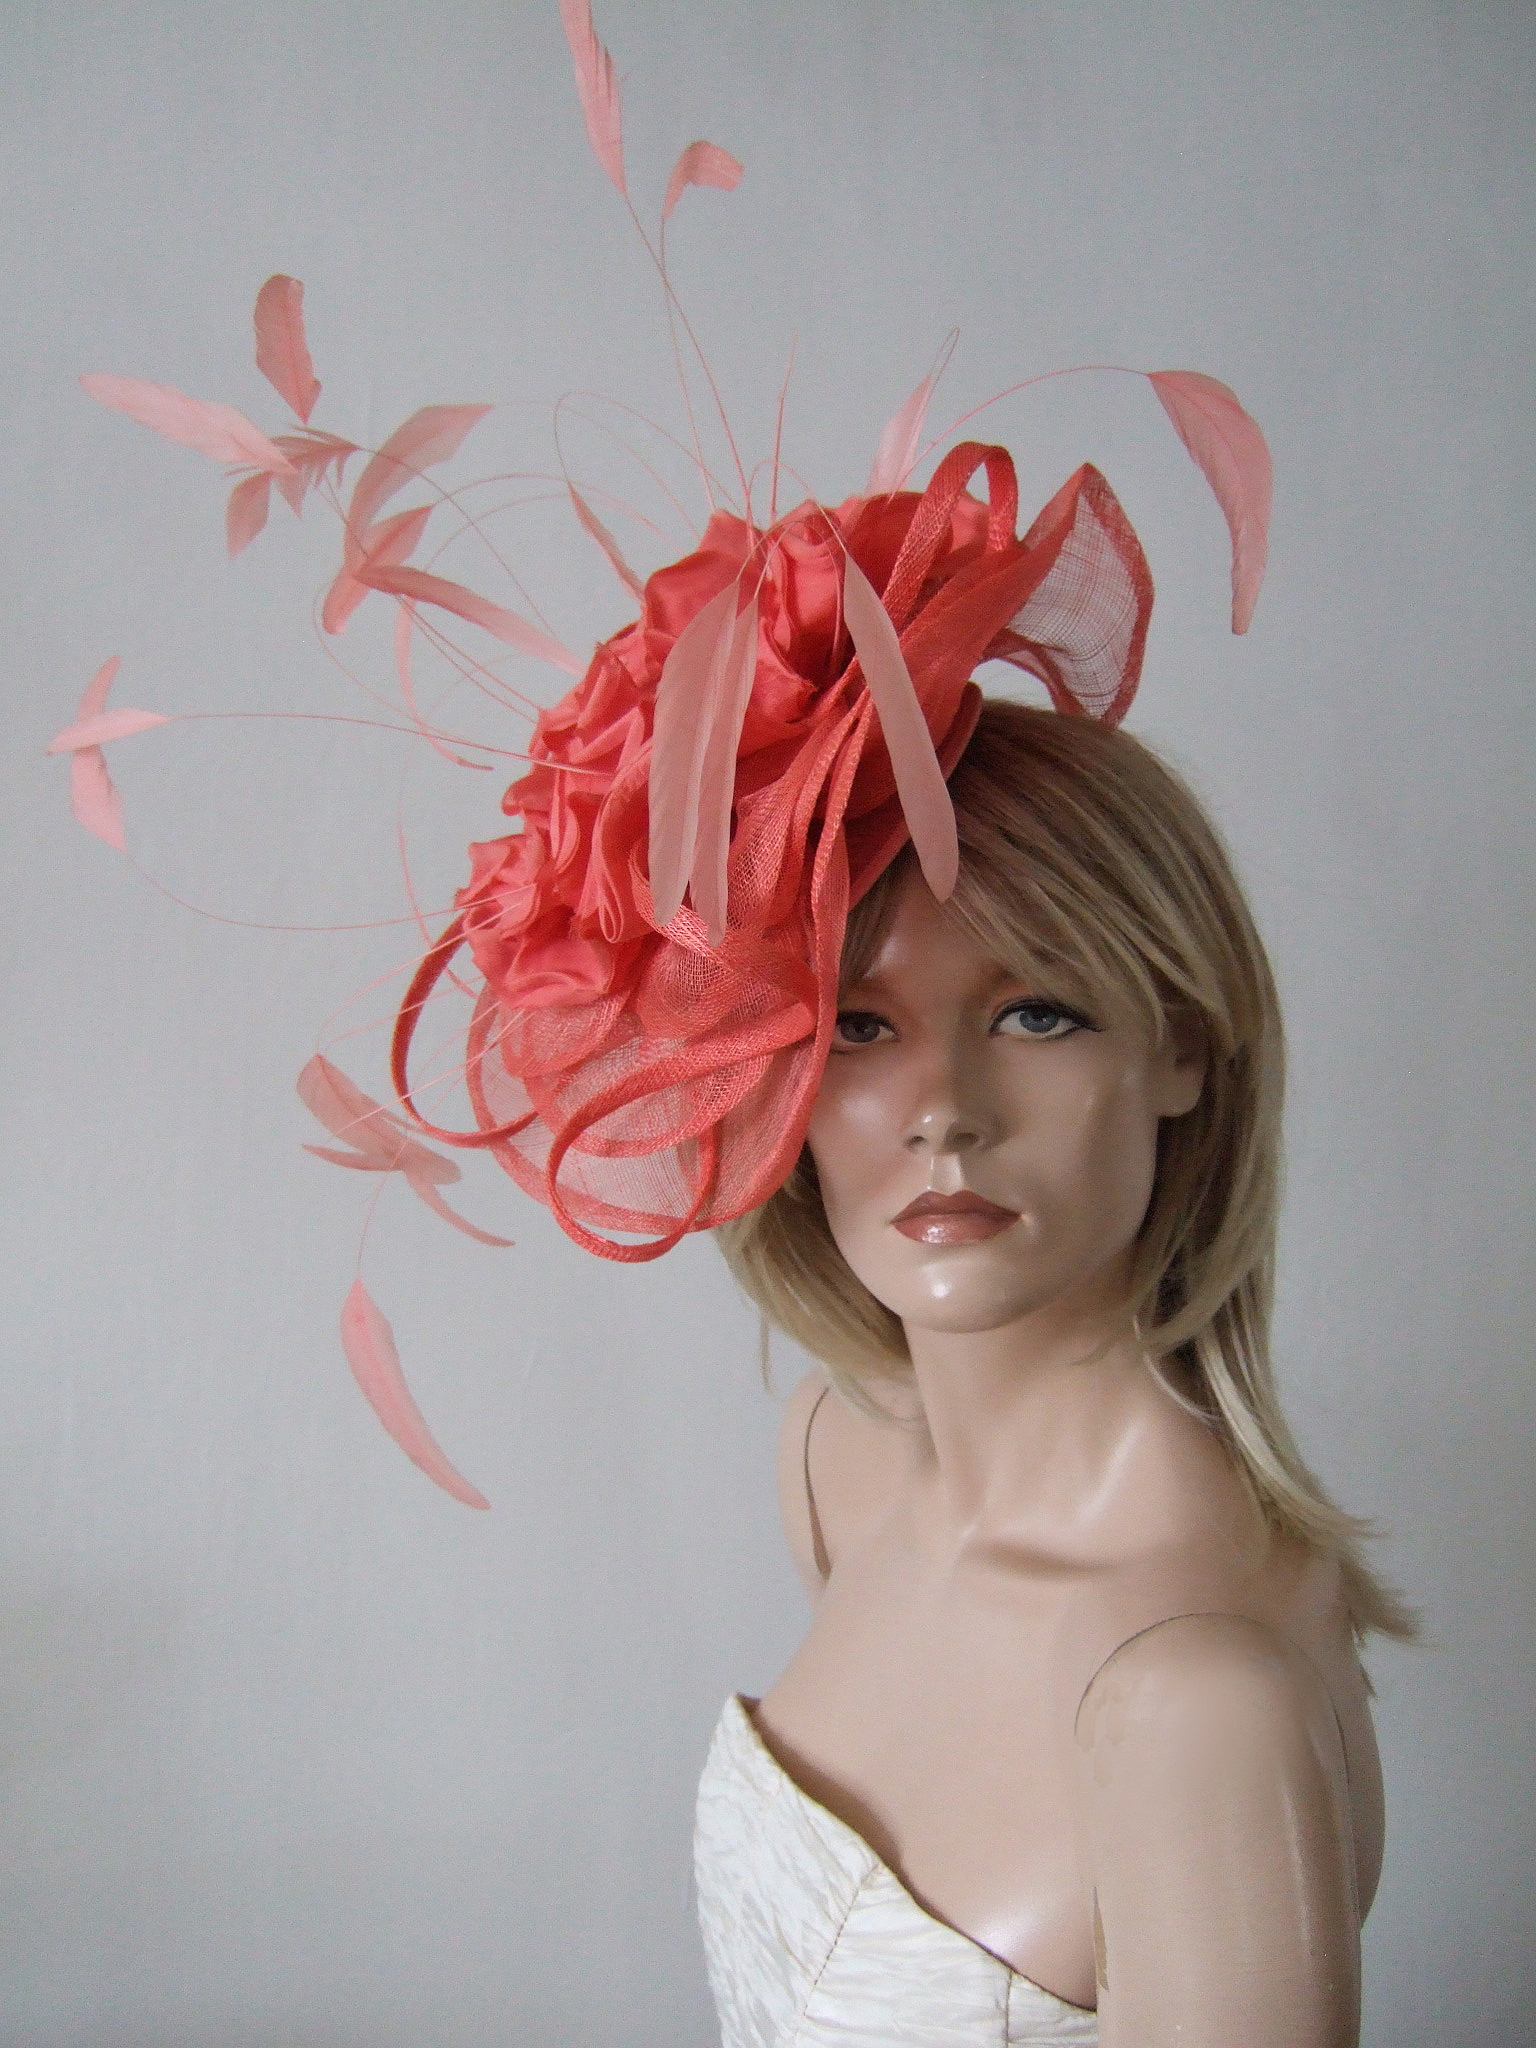 Coral Fascinator for Royal Ascot 2020. Royal Ascot Hat Rental 2020. Hat Hire Berkshire. Best Royal Ascot Hats 2020. Coral Wedding Hats for Hire 2020. Coral Hats for Mother of the Bride 2020. Royal Ascot Hat Rental. Hats to wear with a Coral dress. Formal Wedding Hats for Hire UK 2020. Amazing Hats for the Races 2020.